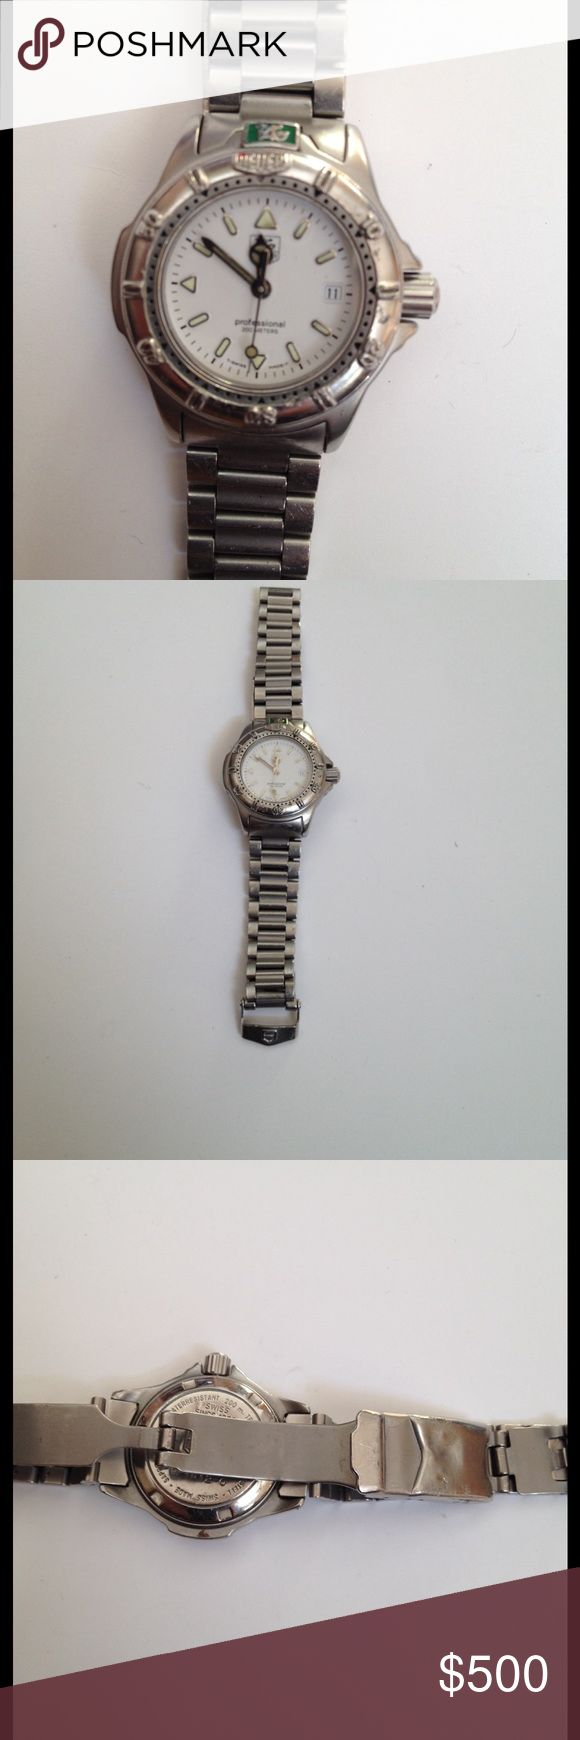 Tag Heuere Professional W-1410 Swiss 200 m Watch Guaranteed Authentic womens TAG HEURE watch WF 1412-0. Professional 200 Meters.  Amazing deal, AS IS, priced to sell! Brushed stainless steel. Movement Quartz, Case Steel, Case diameter 26 x 9 mm, Thickness 9 mm, Sapphire Glasw, White Dial, Date, Bracelet Stainless, Fold clasp. Links were removed, will best fit smaller to average wrist. Needs battery. Loved and well worn, shows use and wear from normal use. Deployment clasp has puppy bite…